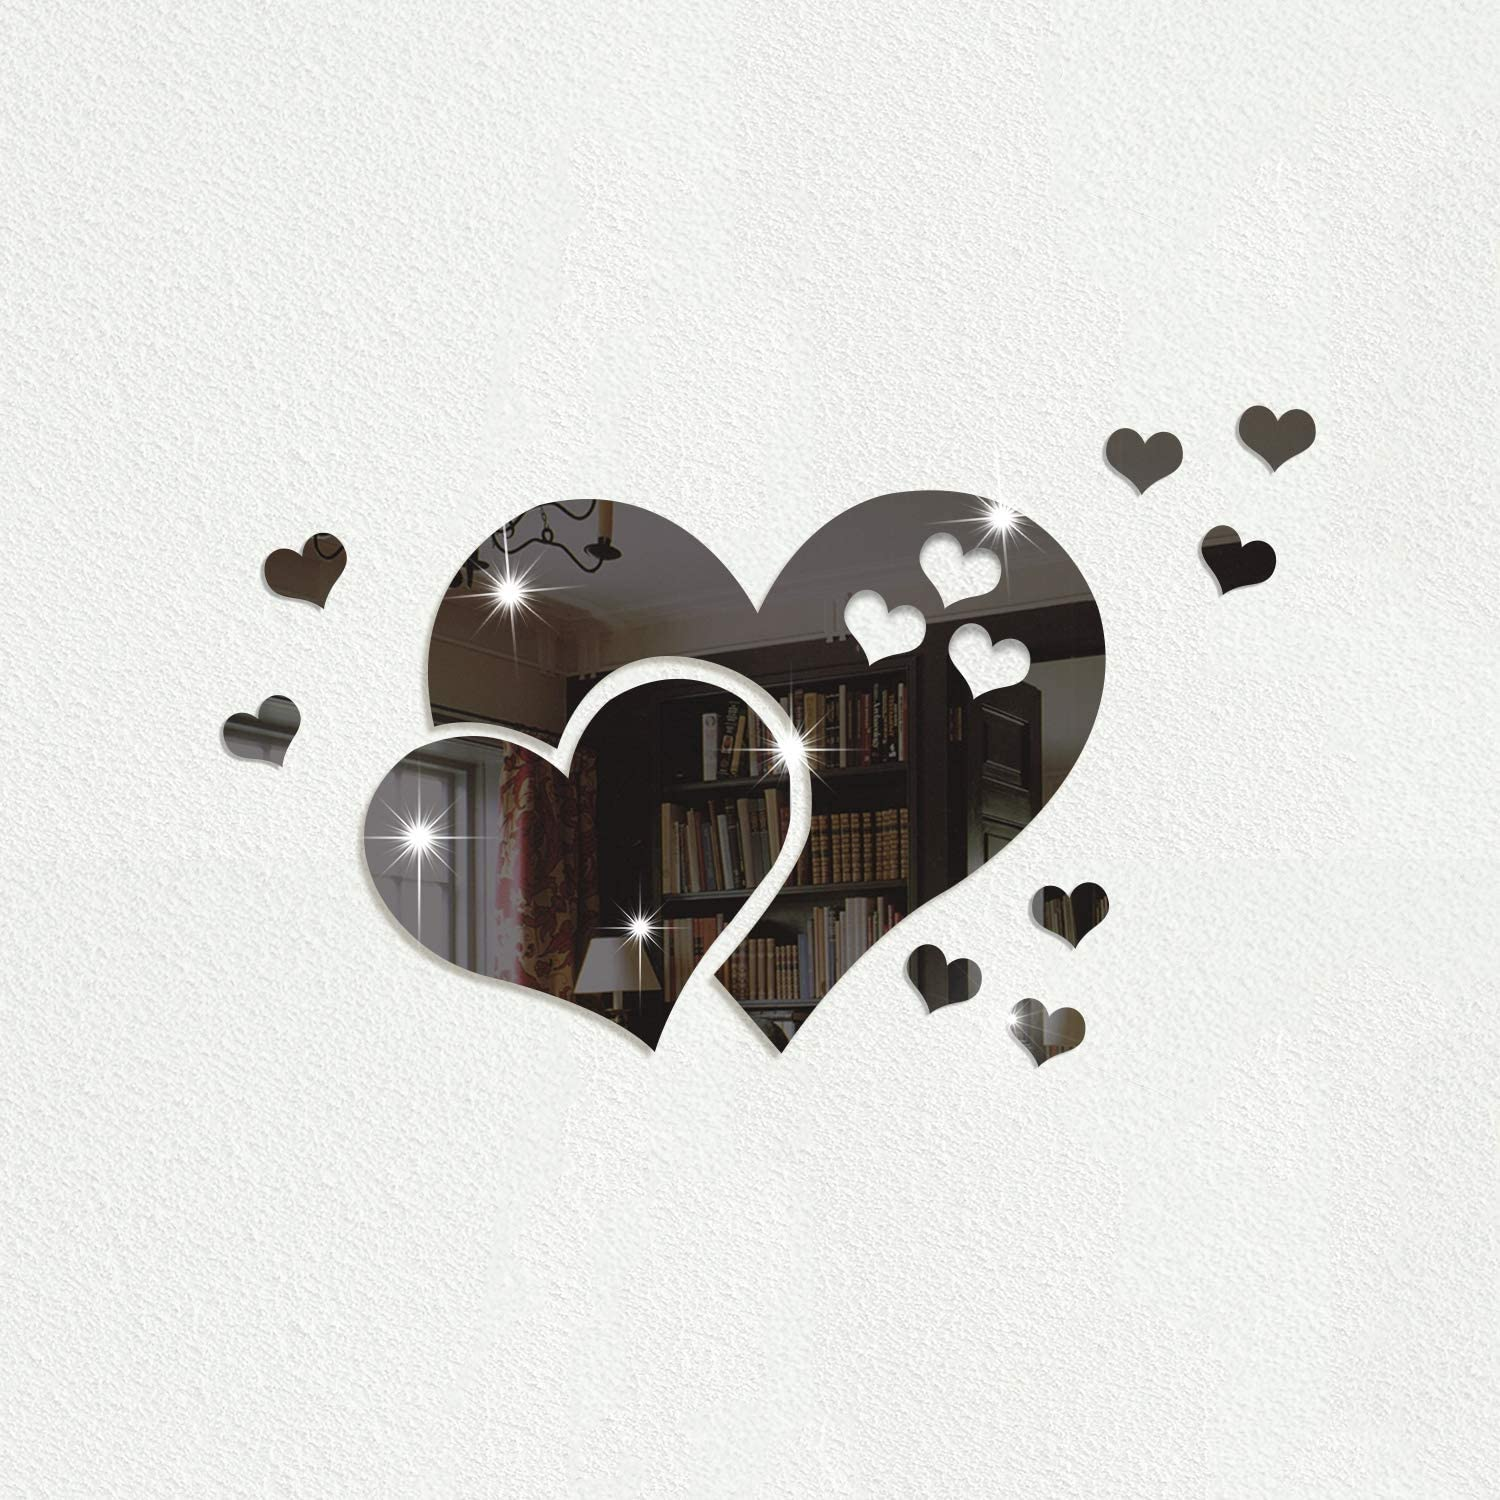 Heart-Shaped Wall Sticker, Small Size Reflective Acrylic Mirror Decal, 3D Wall Murals Decorations for Living Room, Bedroom, Sofa Backdrop, Tv Wall, Background (Black)